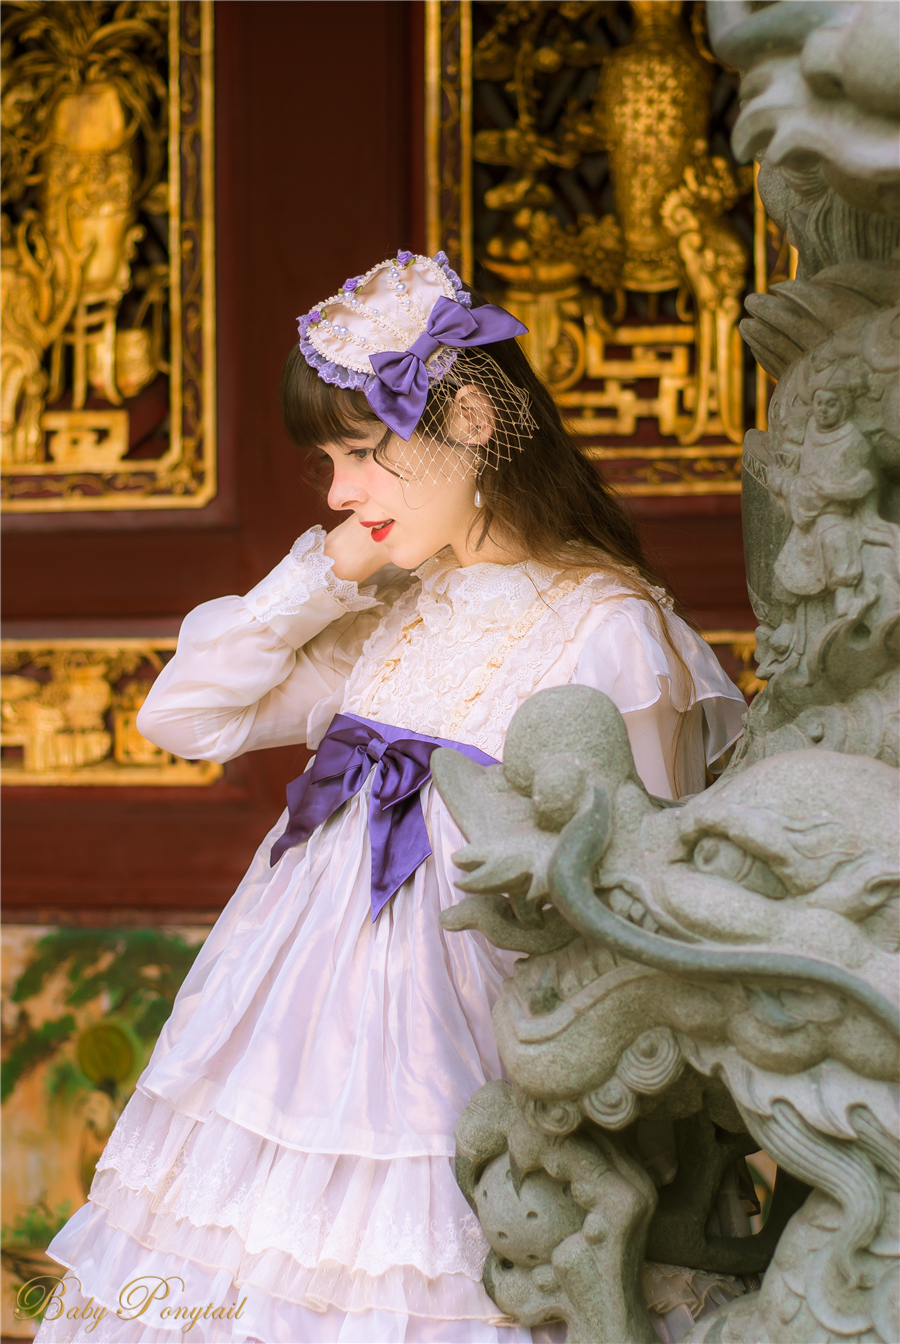 Babyponytail_Model Photo_Present Angel_JSK Violet_1_Claudia_03.jpg